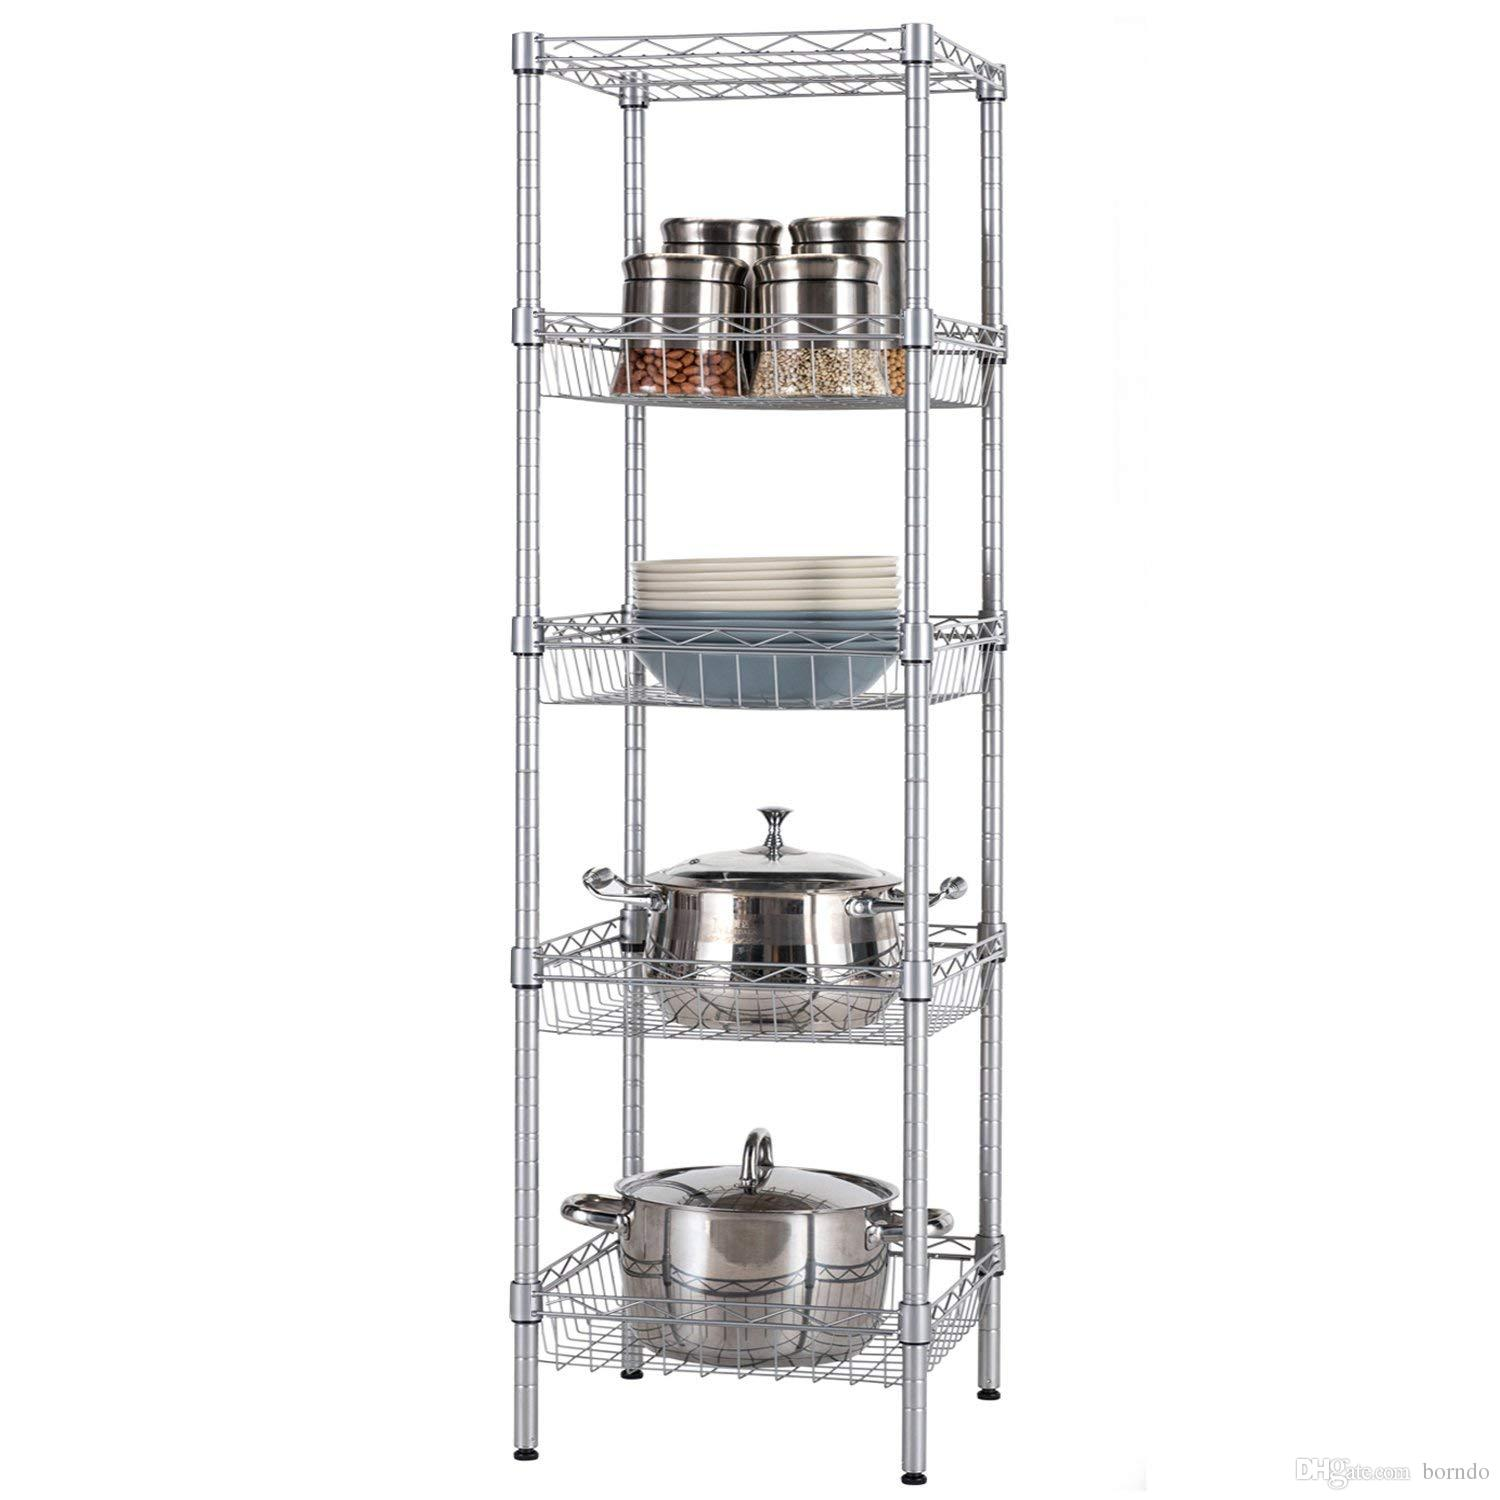 Open Kitchen Metal Rack And Shelves Units, Pots And Pans Wine Dishes  Storage Organizer ,baker S Rack, Silver Gray Steel (5 Tiers)